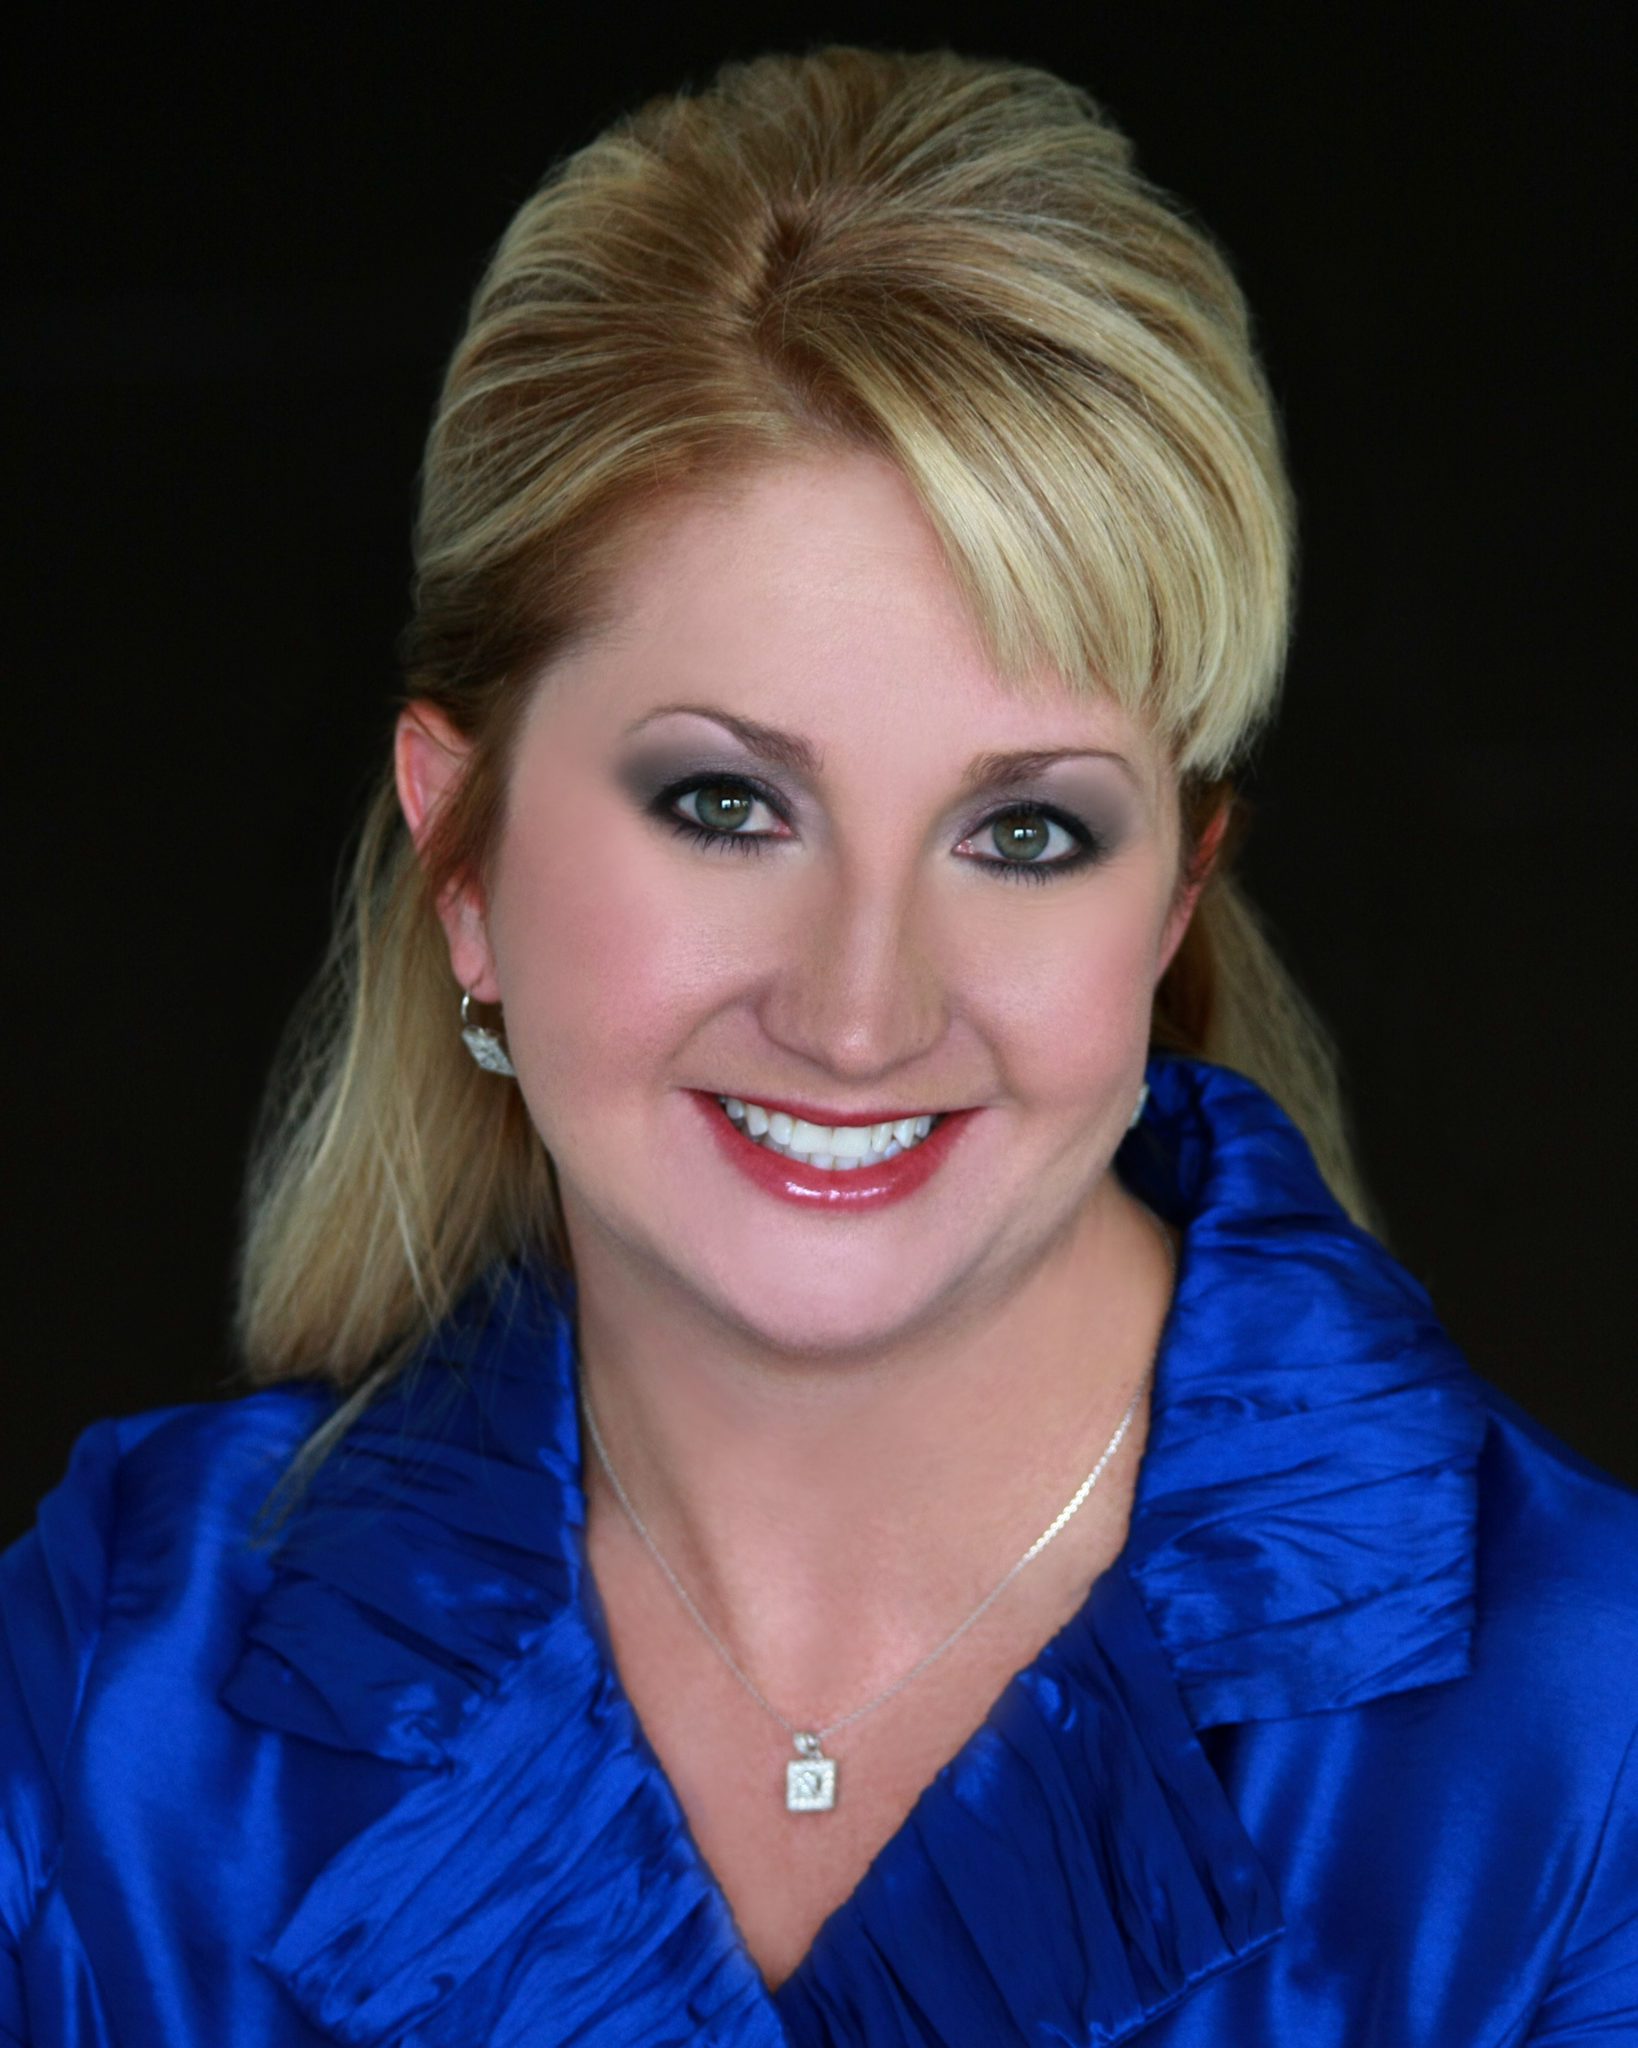 A photo of Lisa Tolliver, the owner of Posh Productions, the best wedding planner in Johnson City